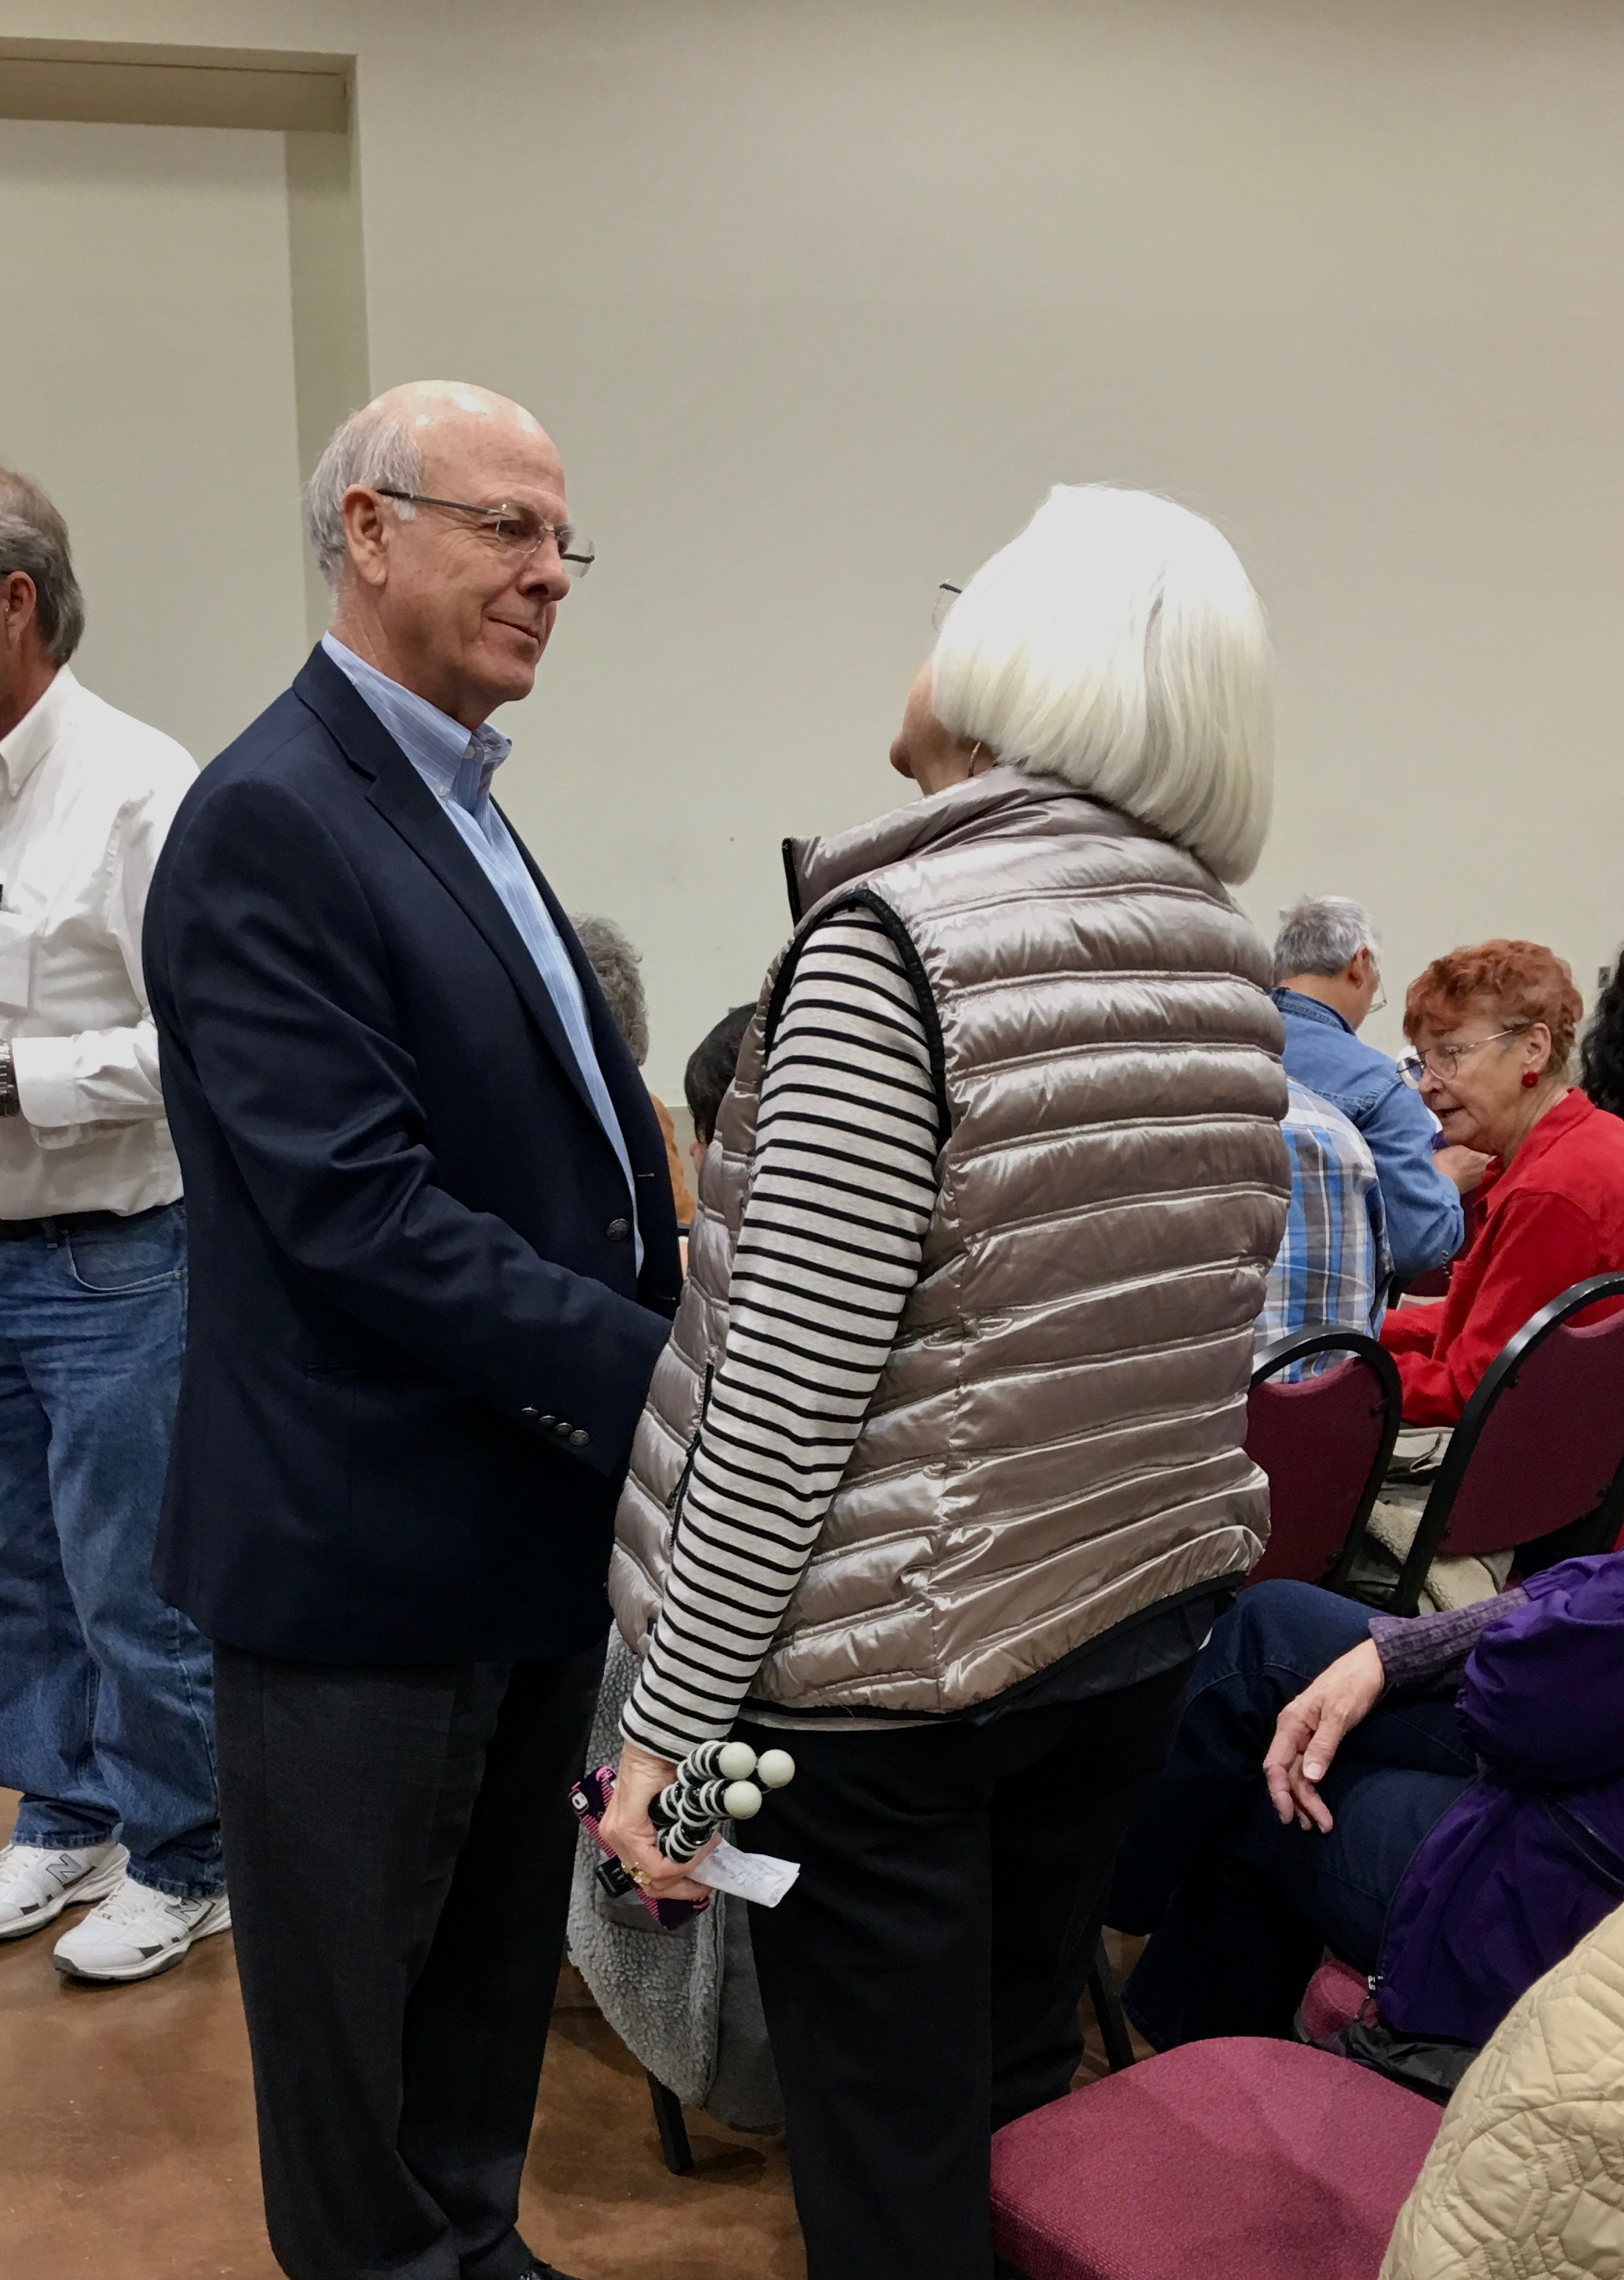 Pat Warner is both persuasive and persistent in questioning Rep. Steve Pearce (R-NM) at a town hall in Ruidoso. -